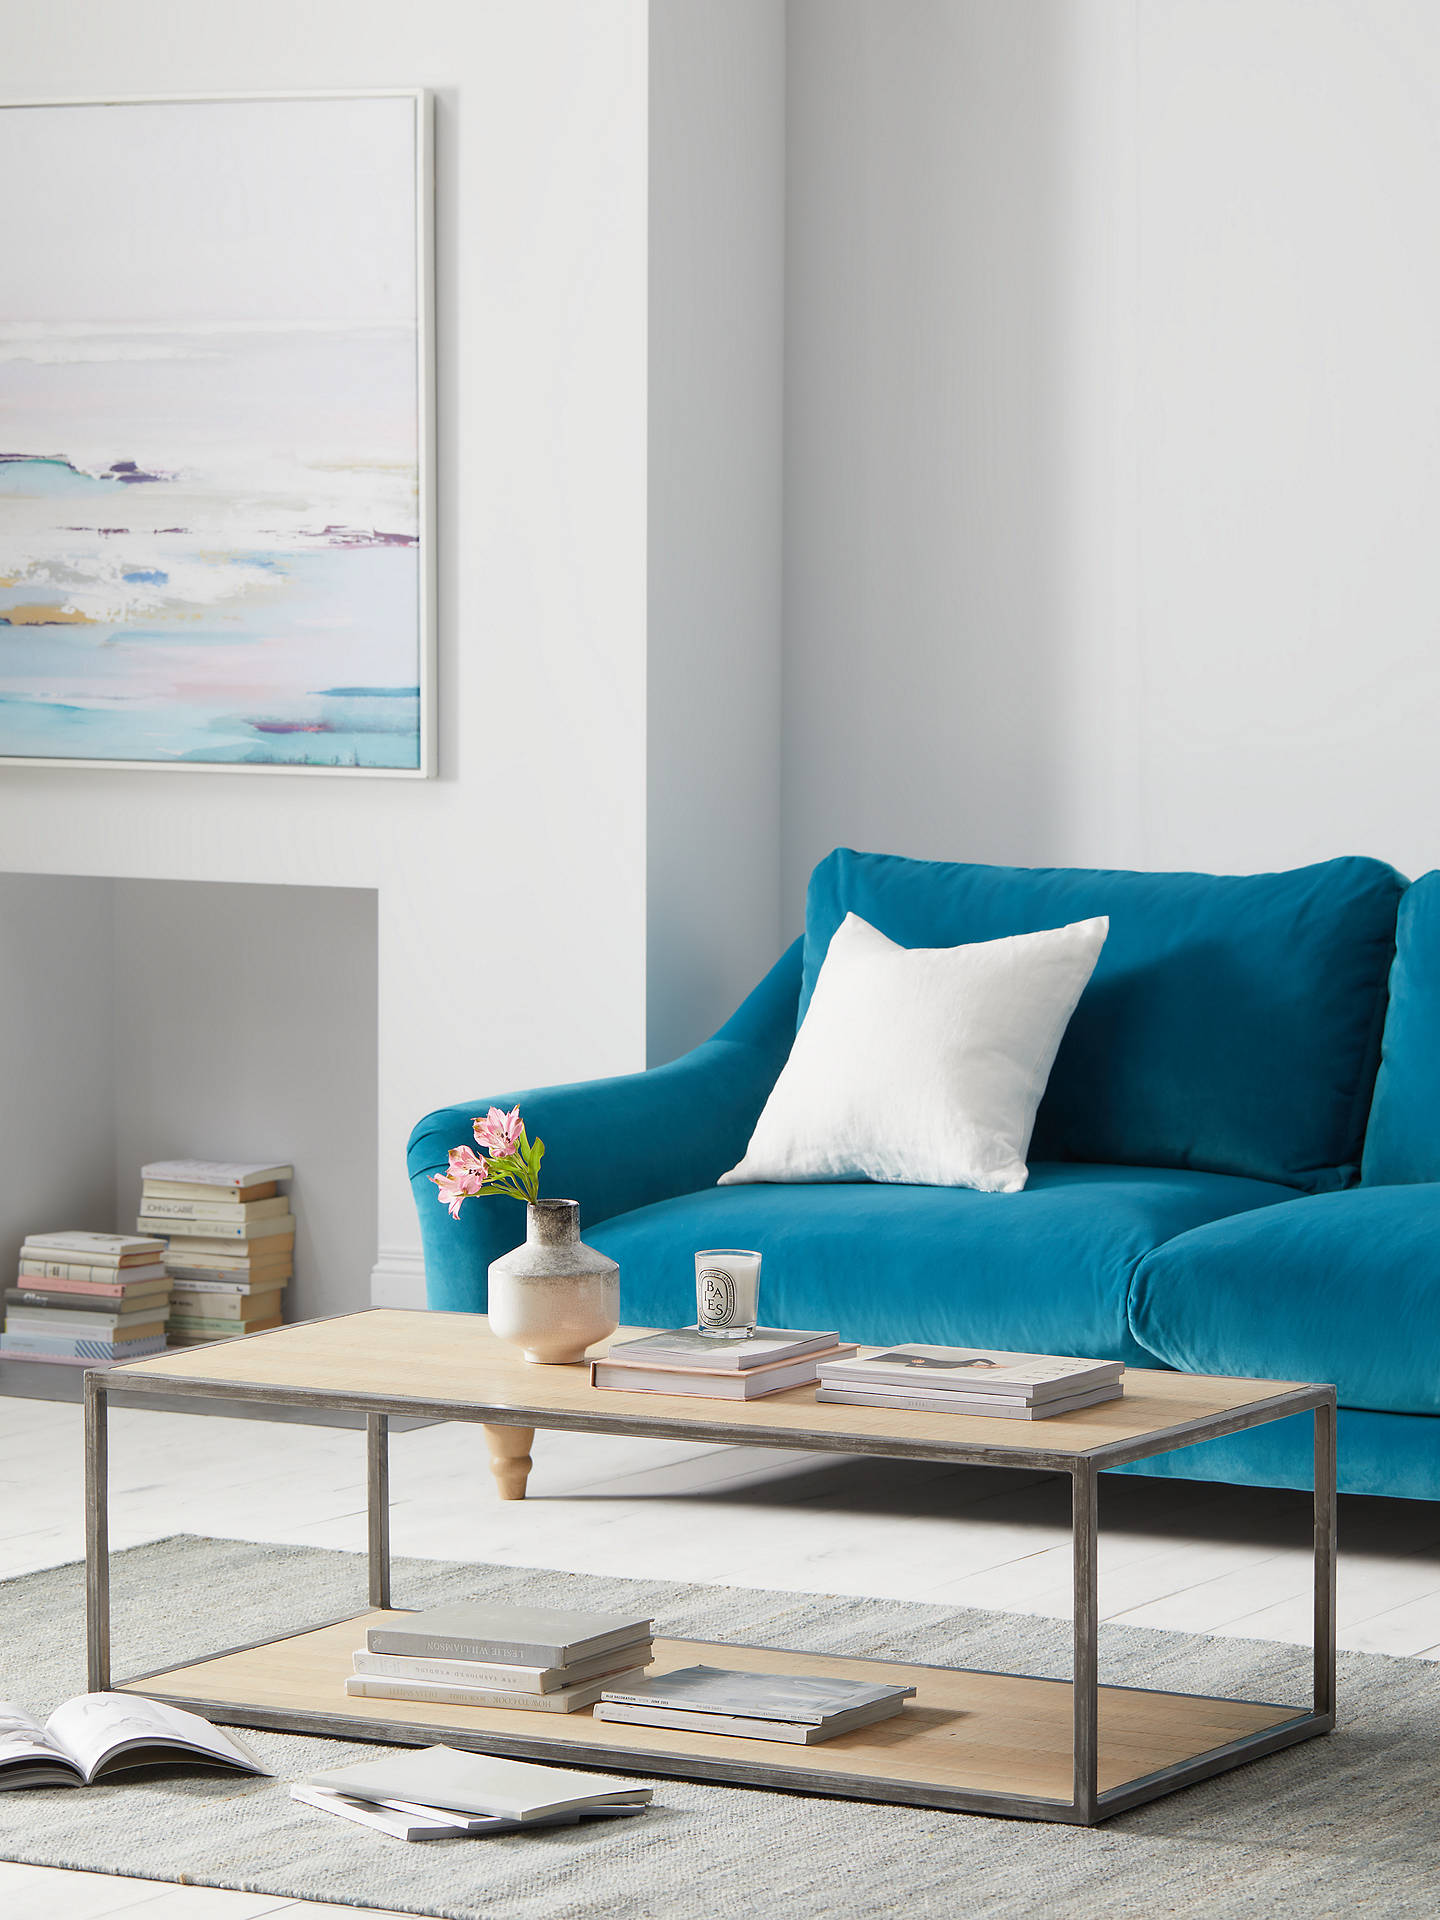 Best Sofa Sale The Top January Sales Sofa Deals From John Lewis Made Wayfair And More Real Homes